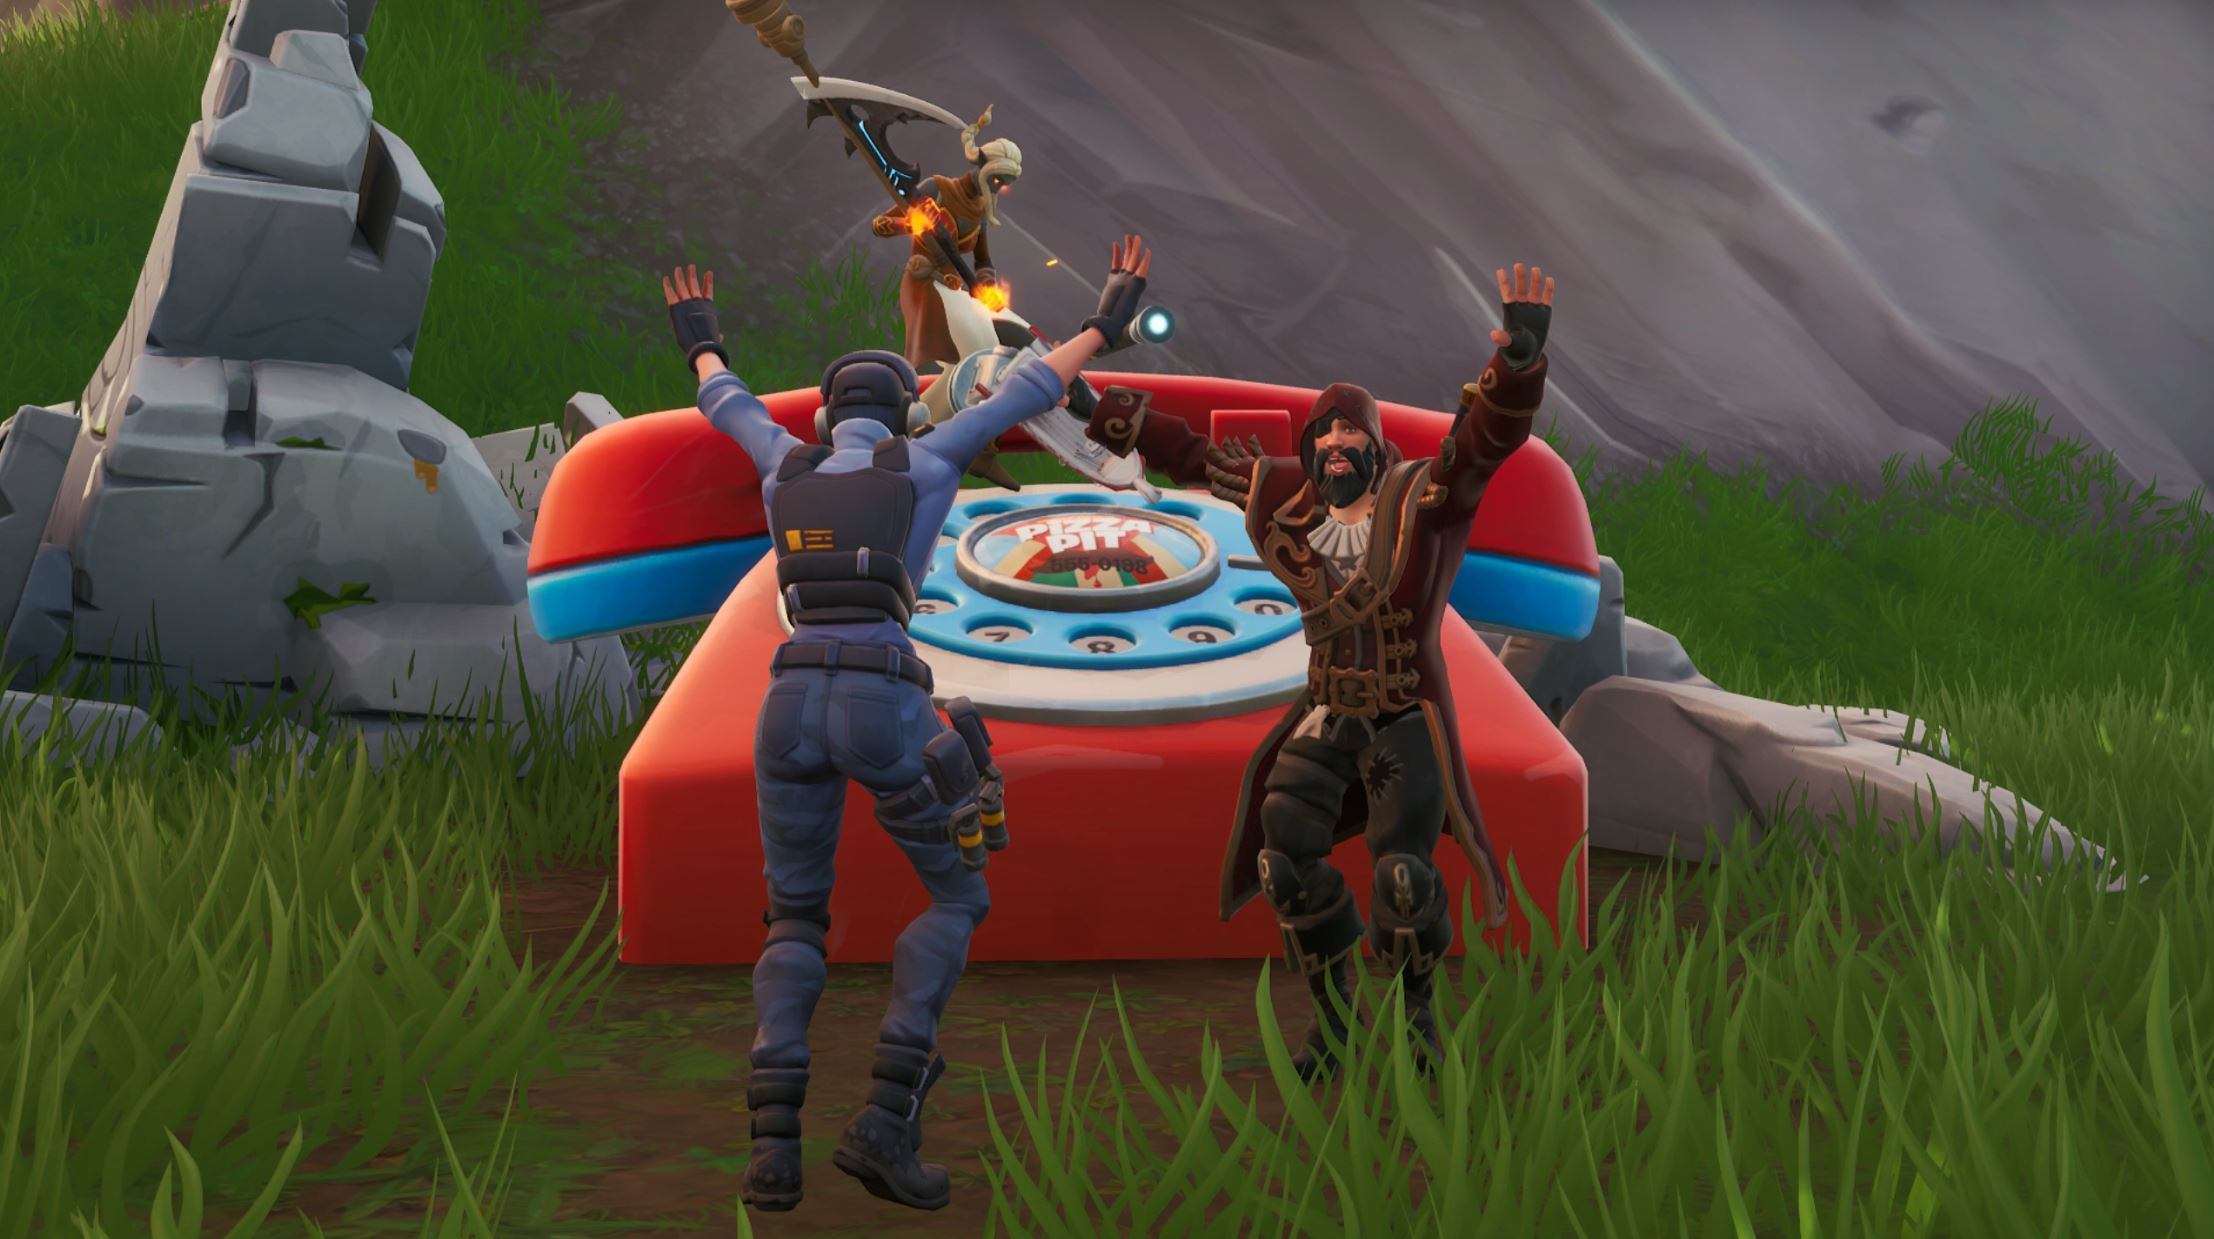 Fortnite: Phone and phone number locations | PC Gamer